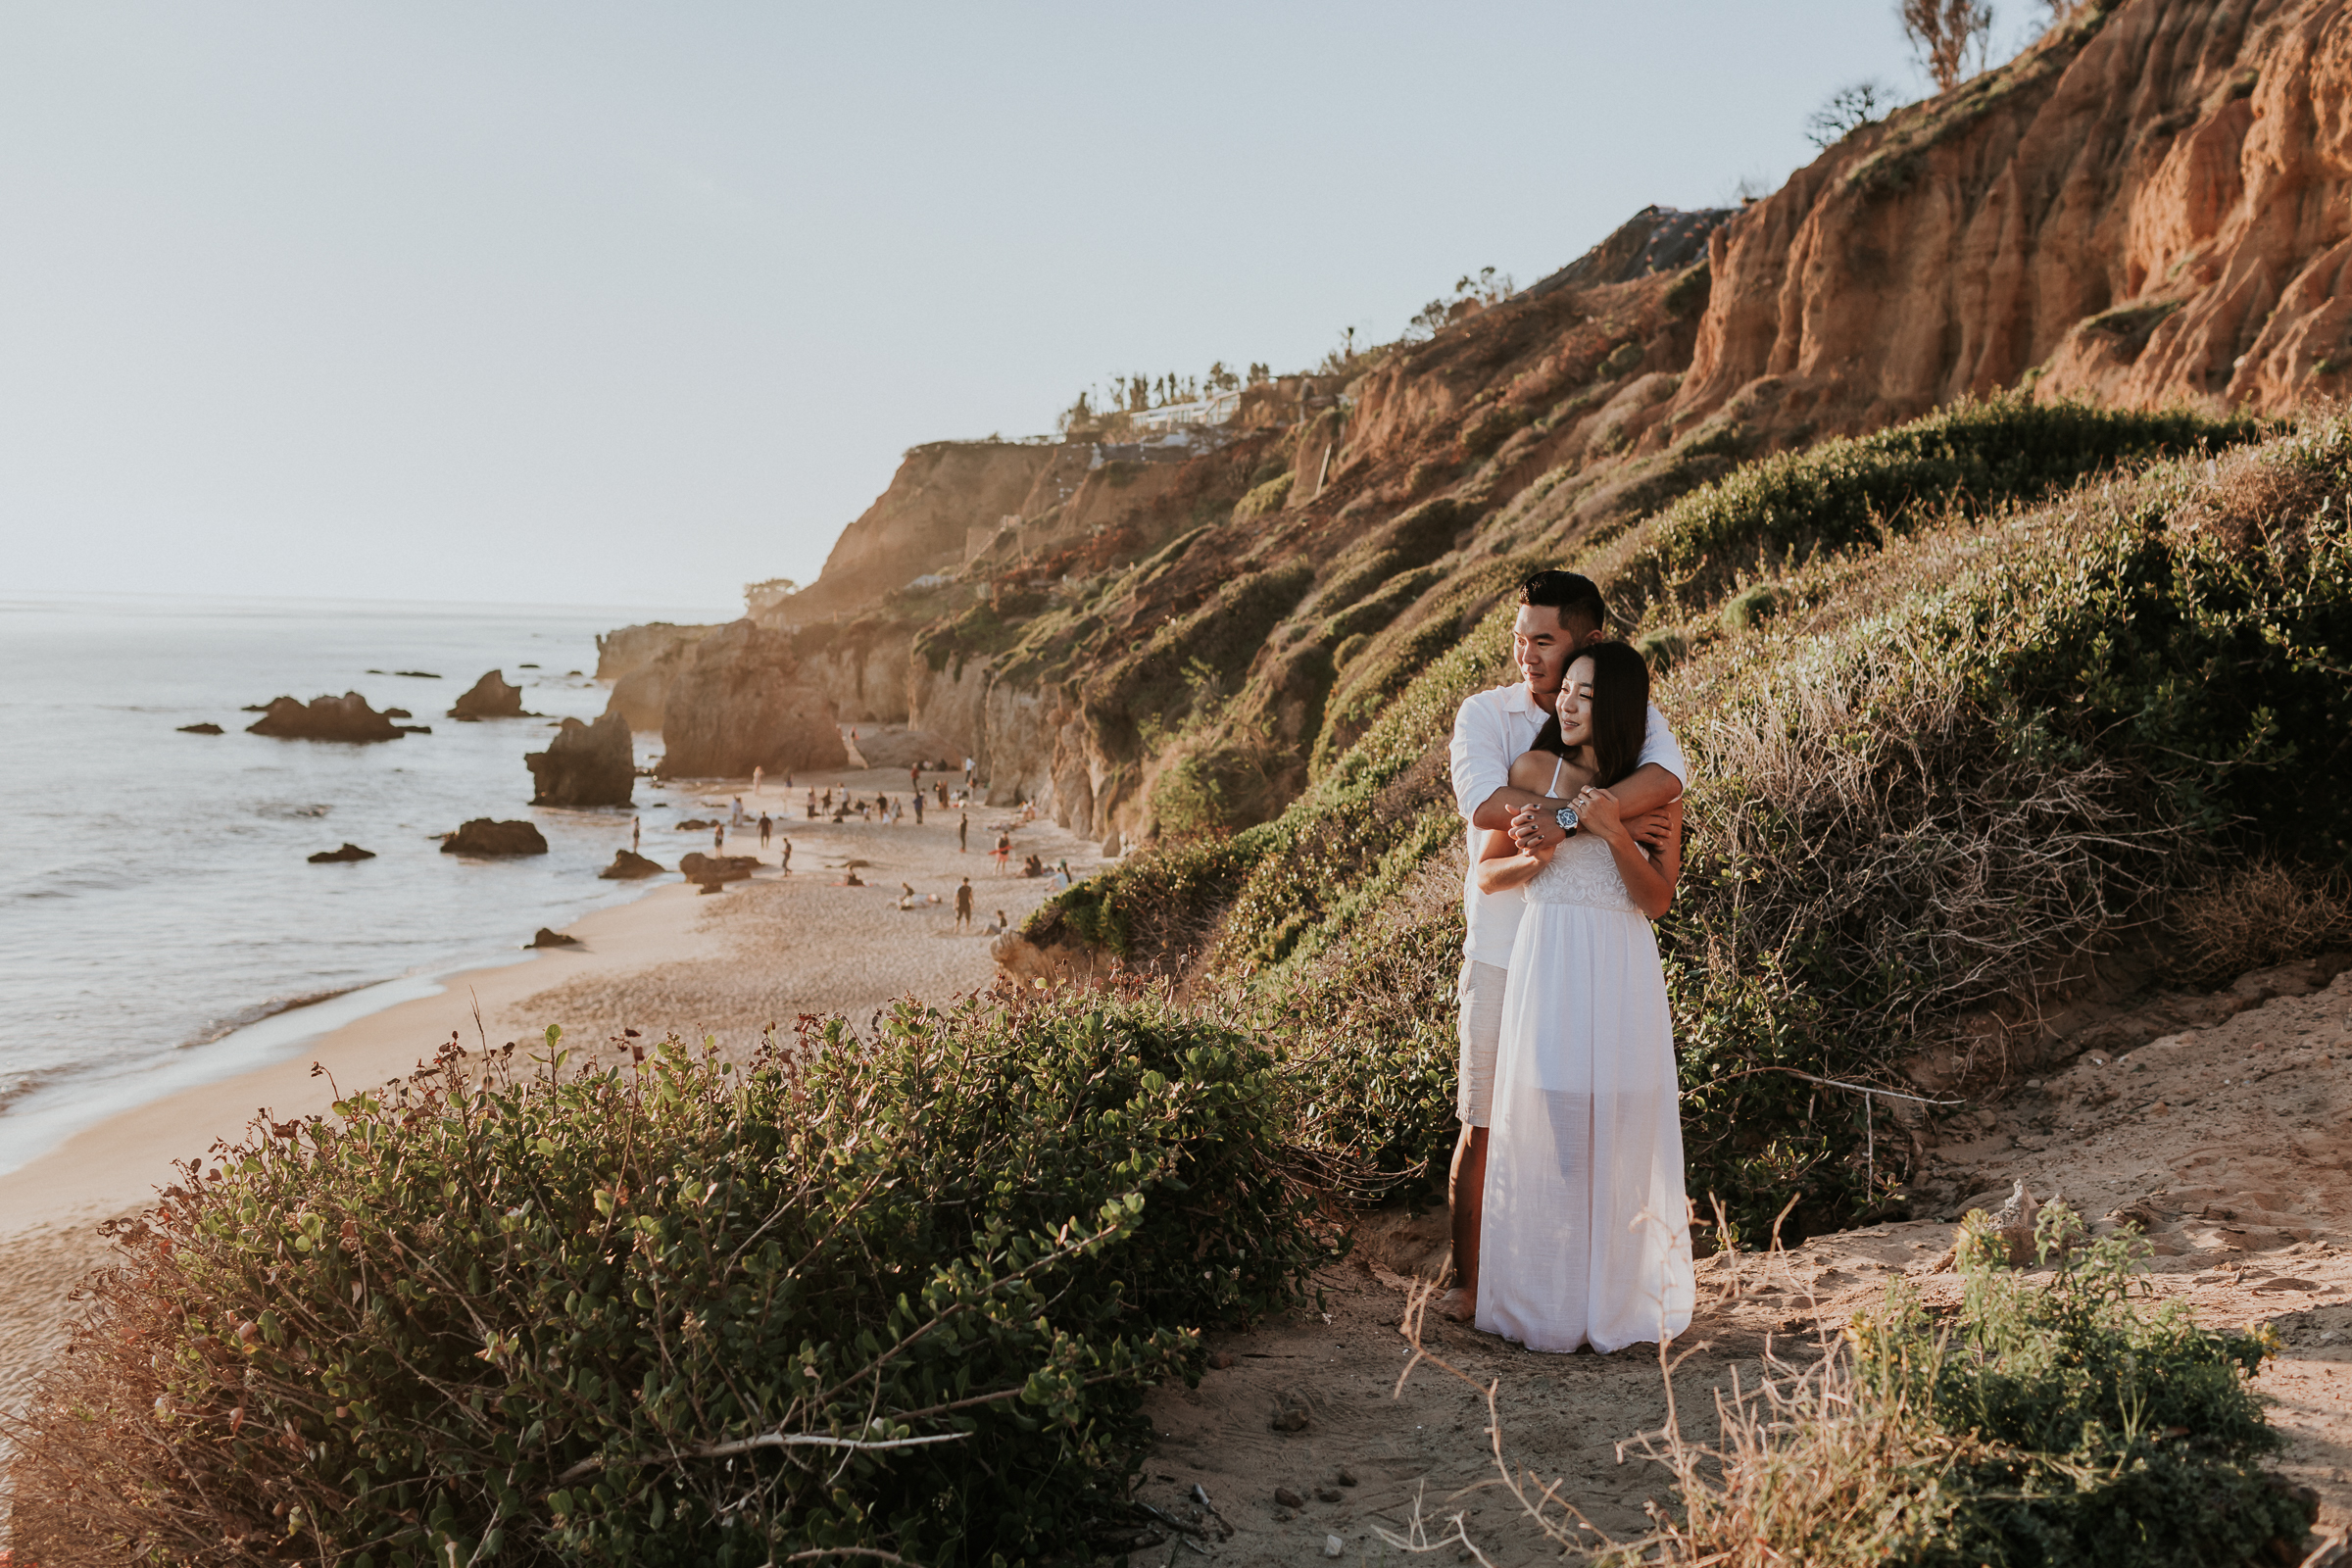 Malibu-El-Matador-State-Beach-Sunset-Engagement-Photos-Los-Angeles-Documentary-Wedding-Photographer-30.jpg